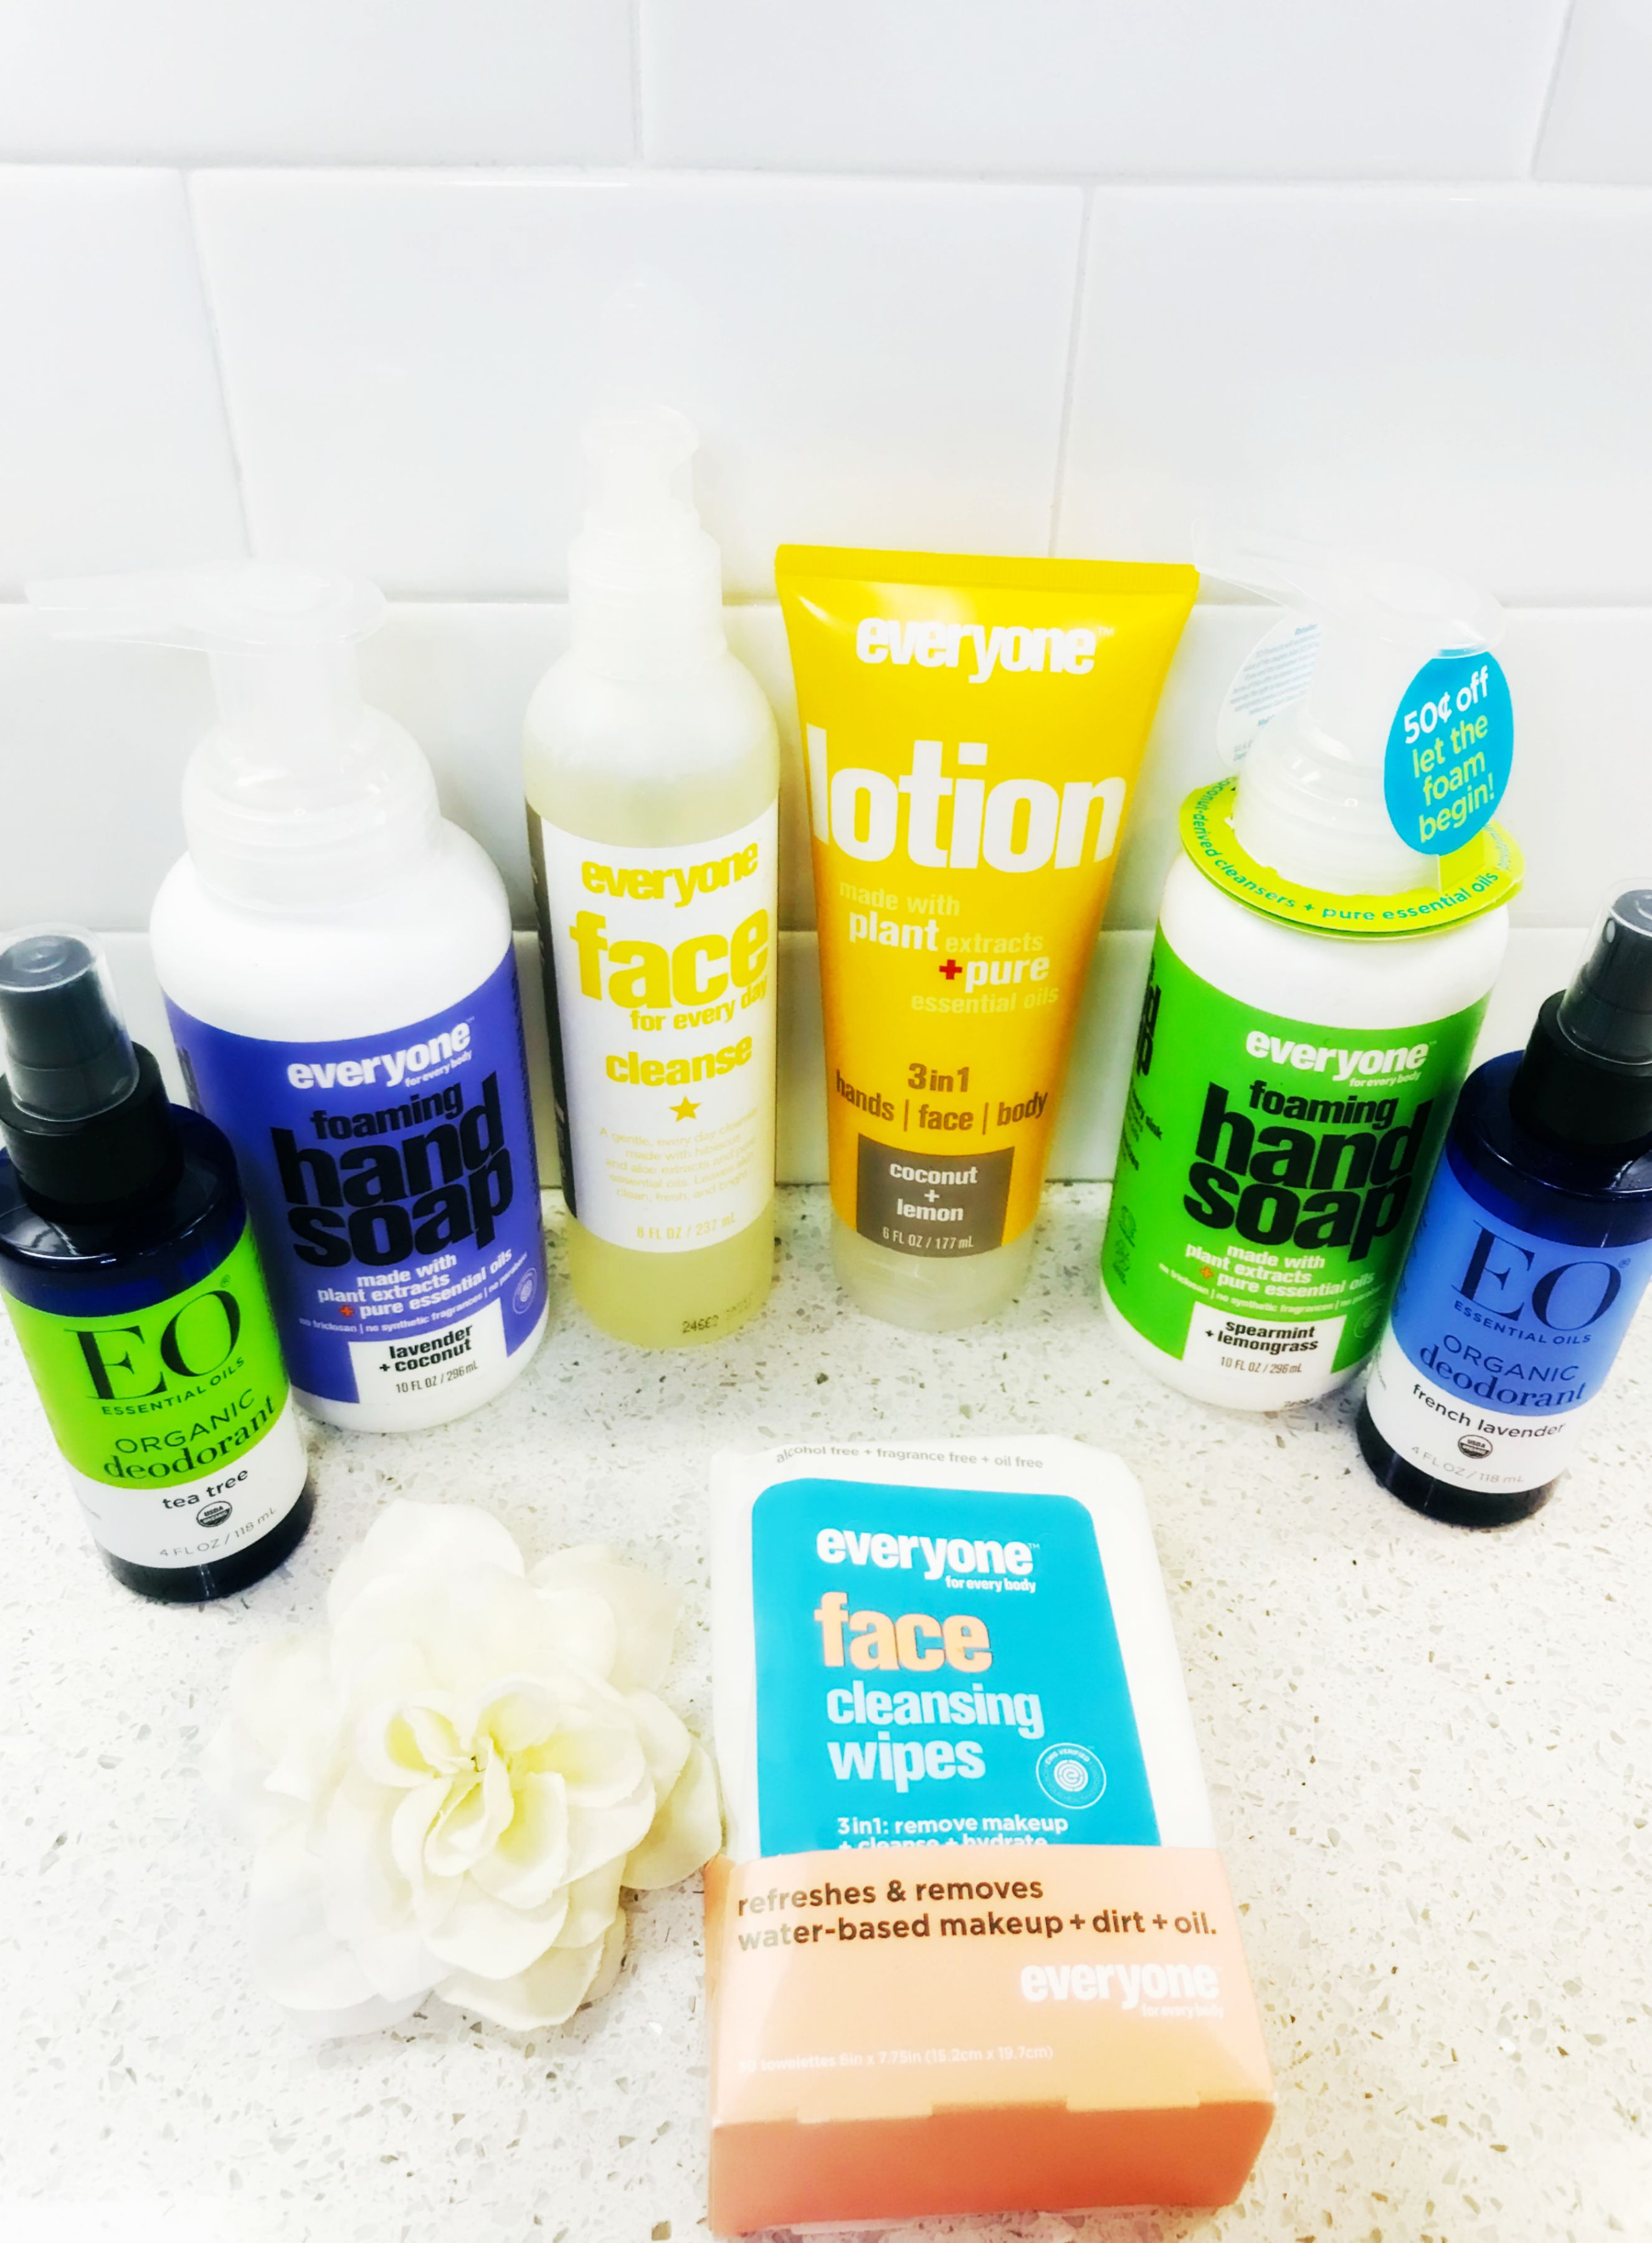 Clean up your personal care routine this spring and beyond